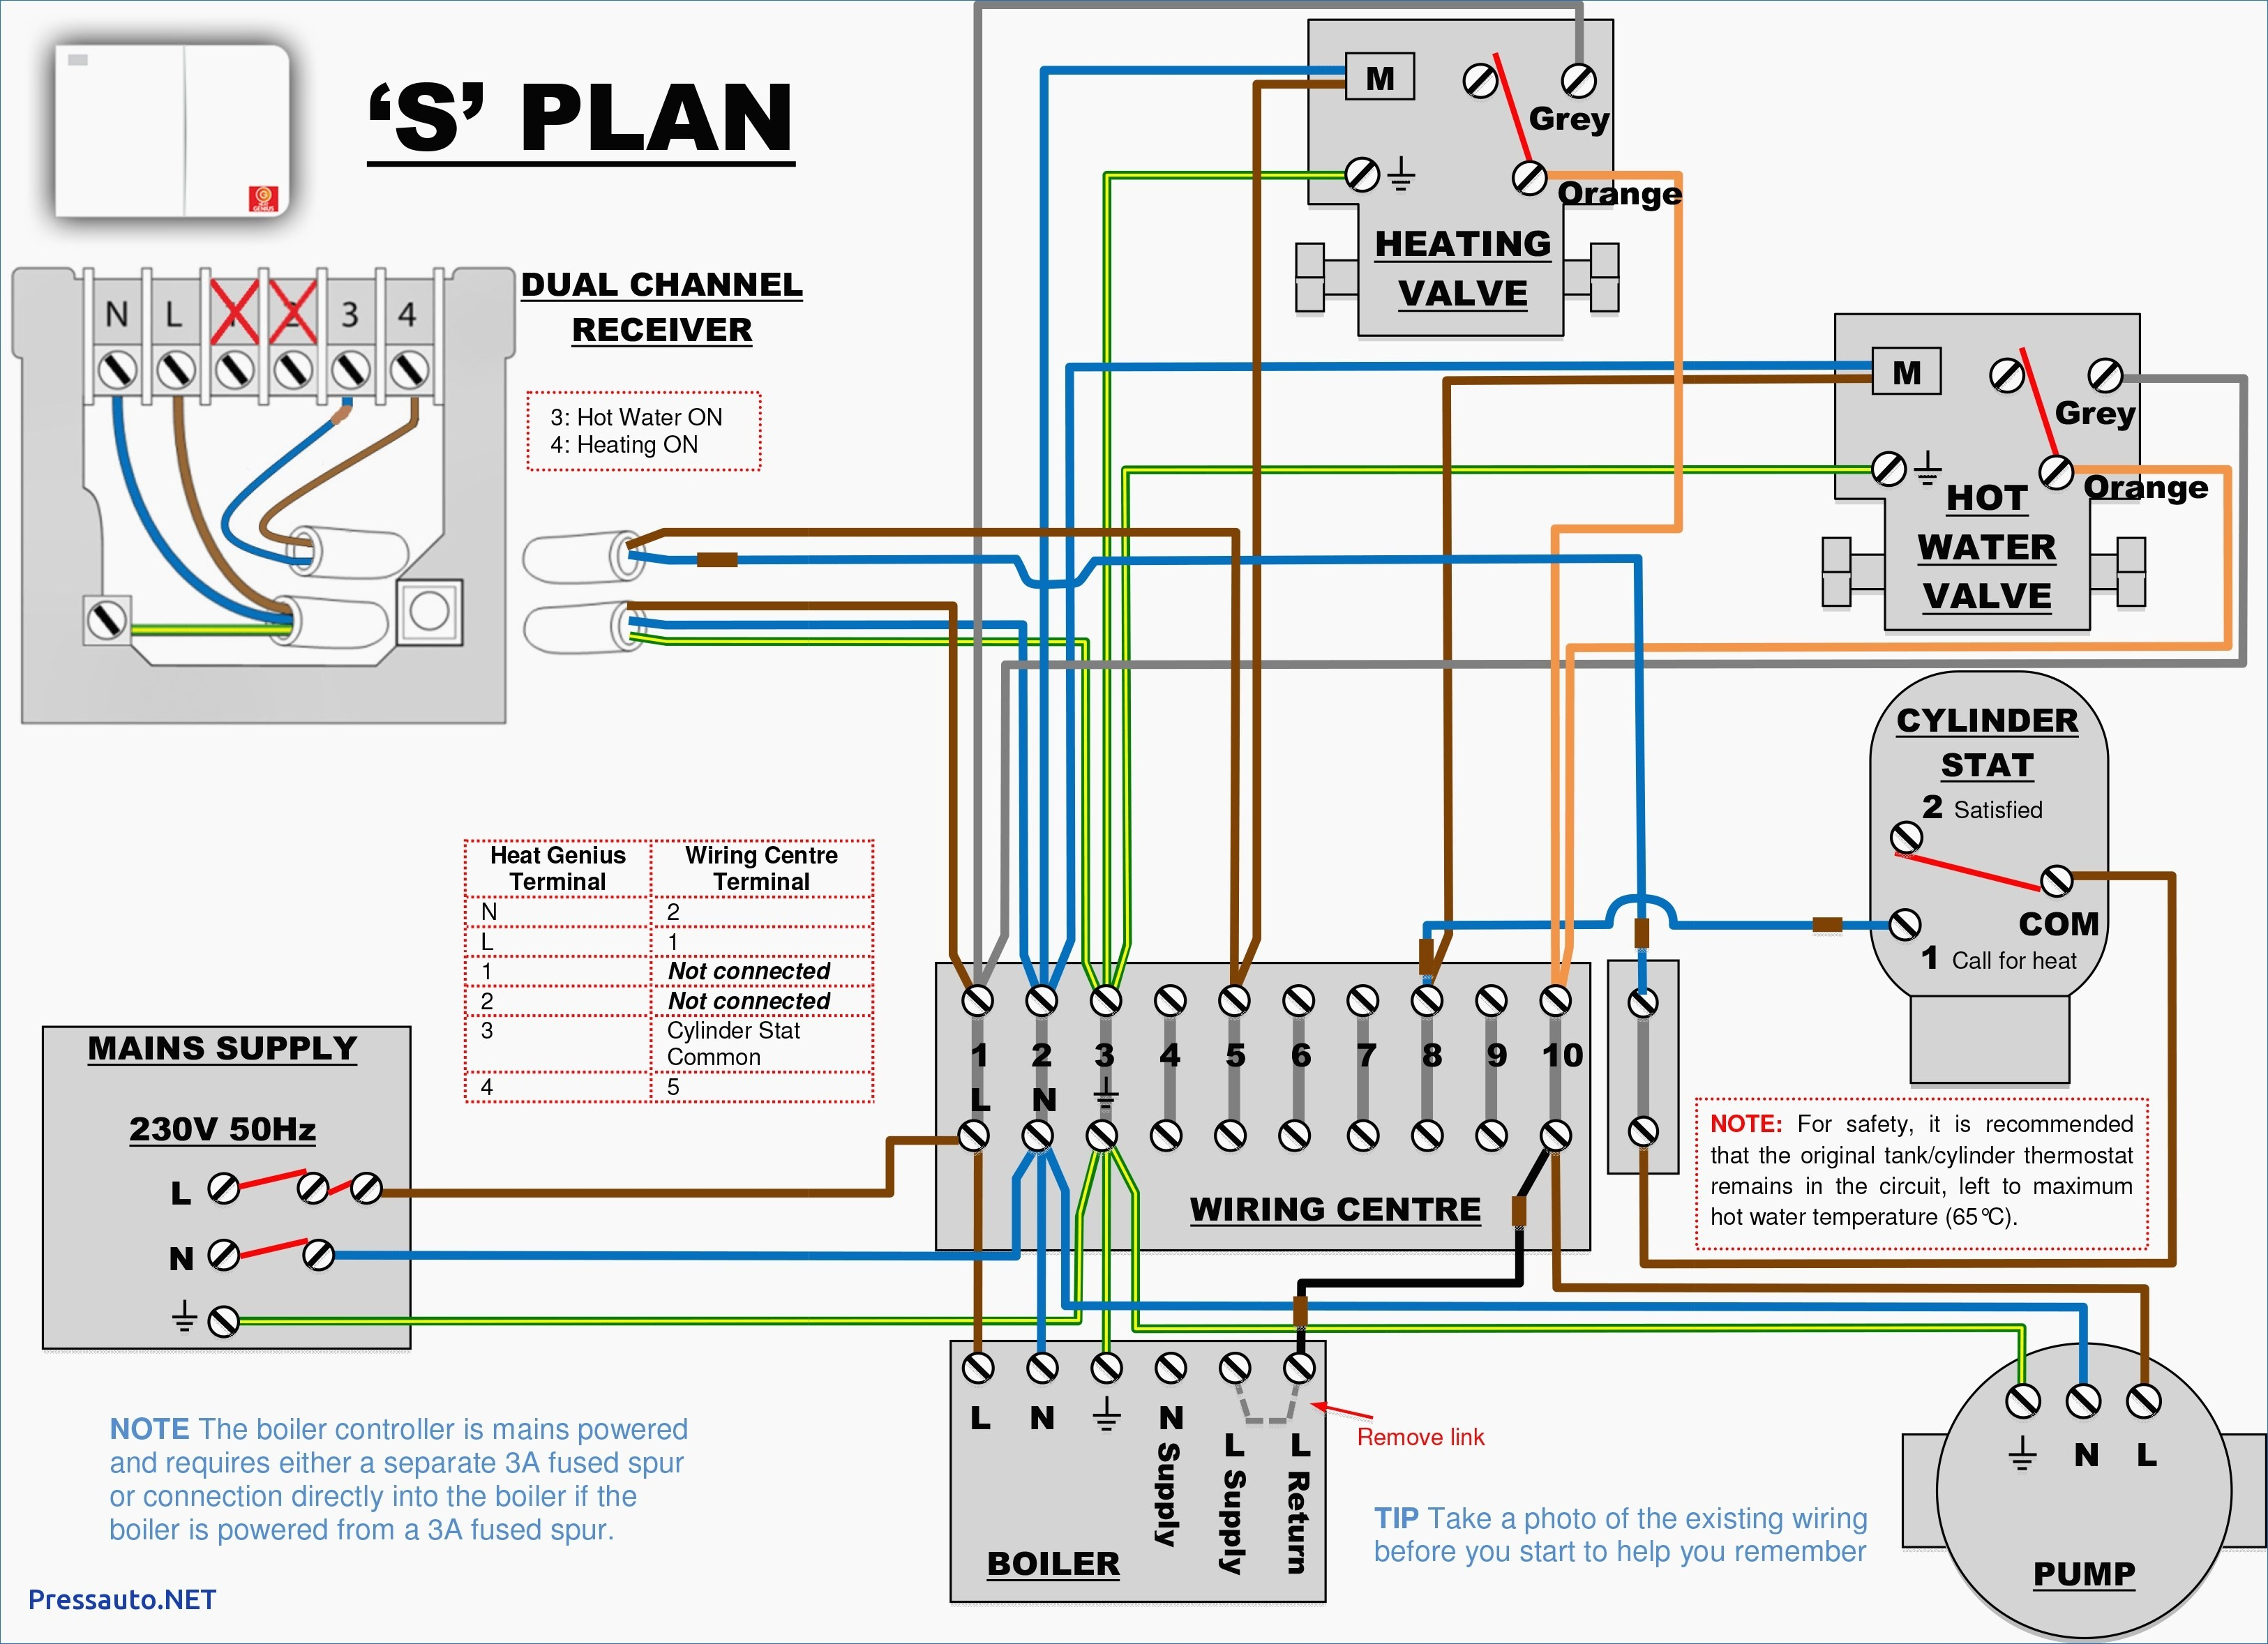 Ac contactor wiring diagram air conditioner schematic diagram ac contactor wiring diagram air conditioner schematic diagram picture uncategorized carrier asfbconference2016 Image collections